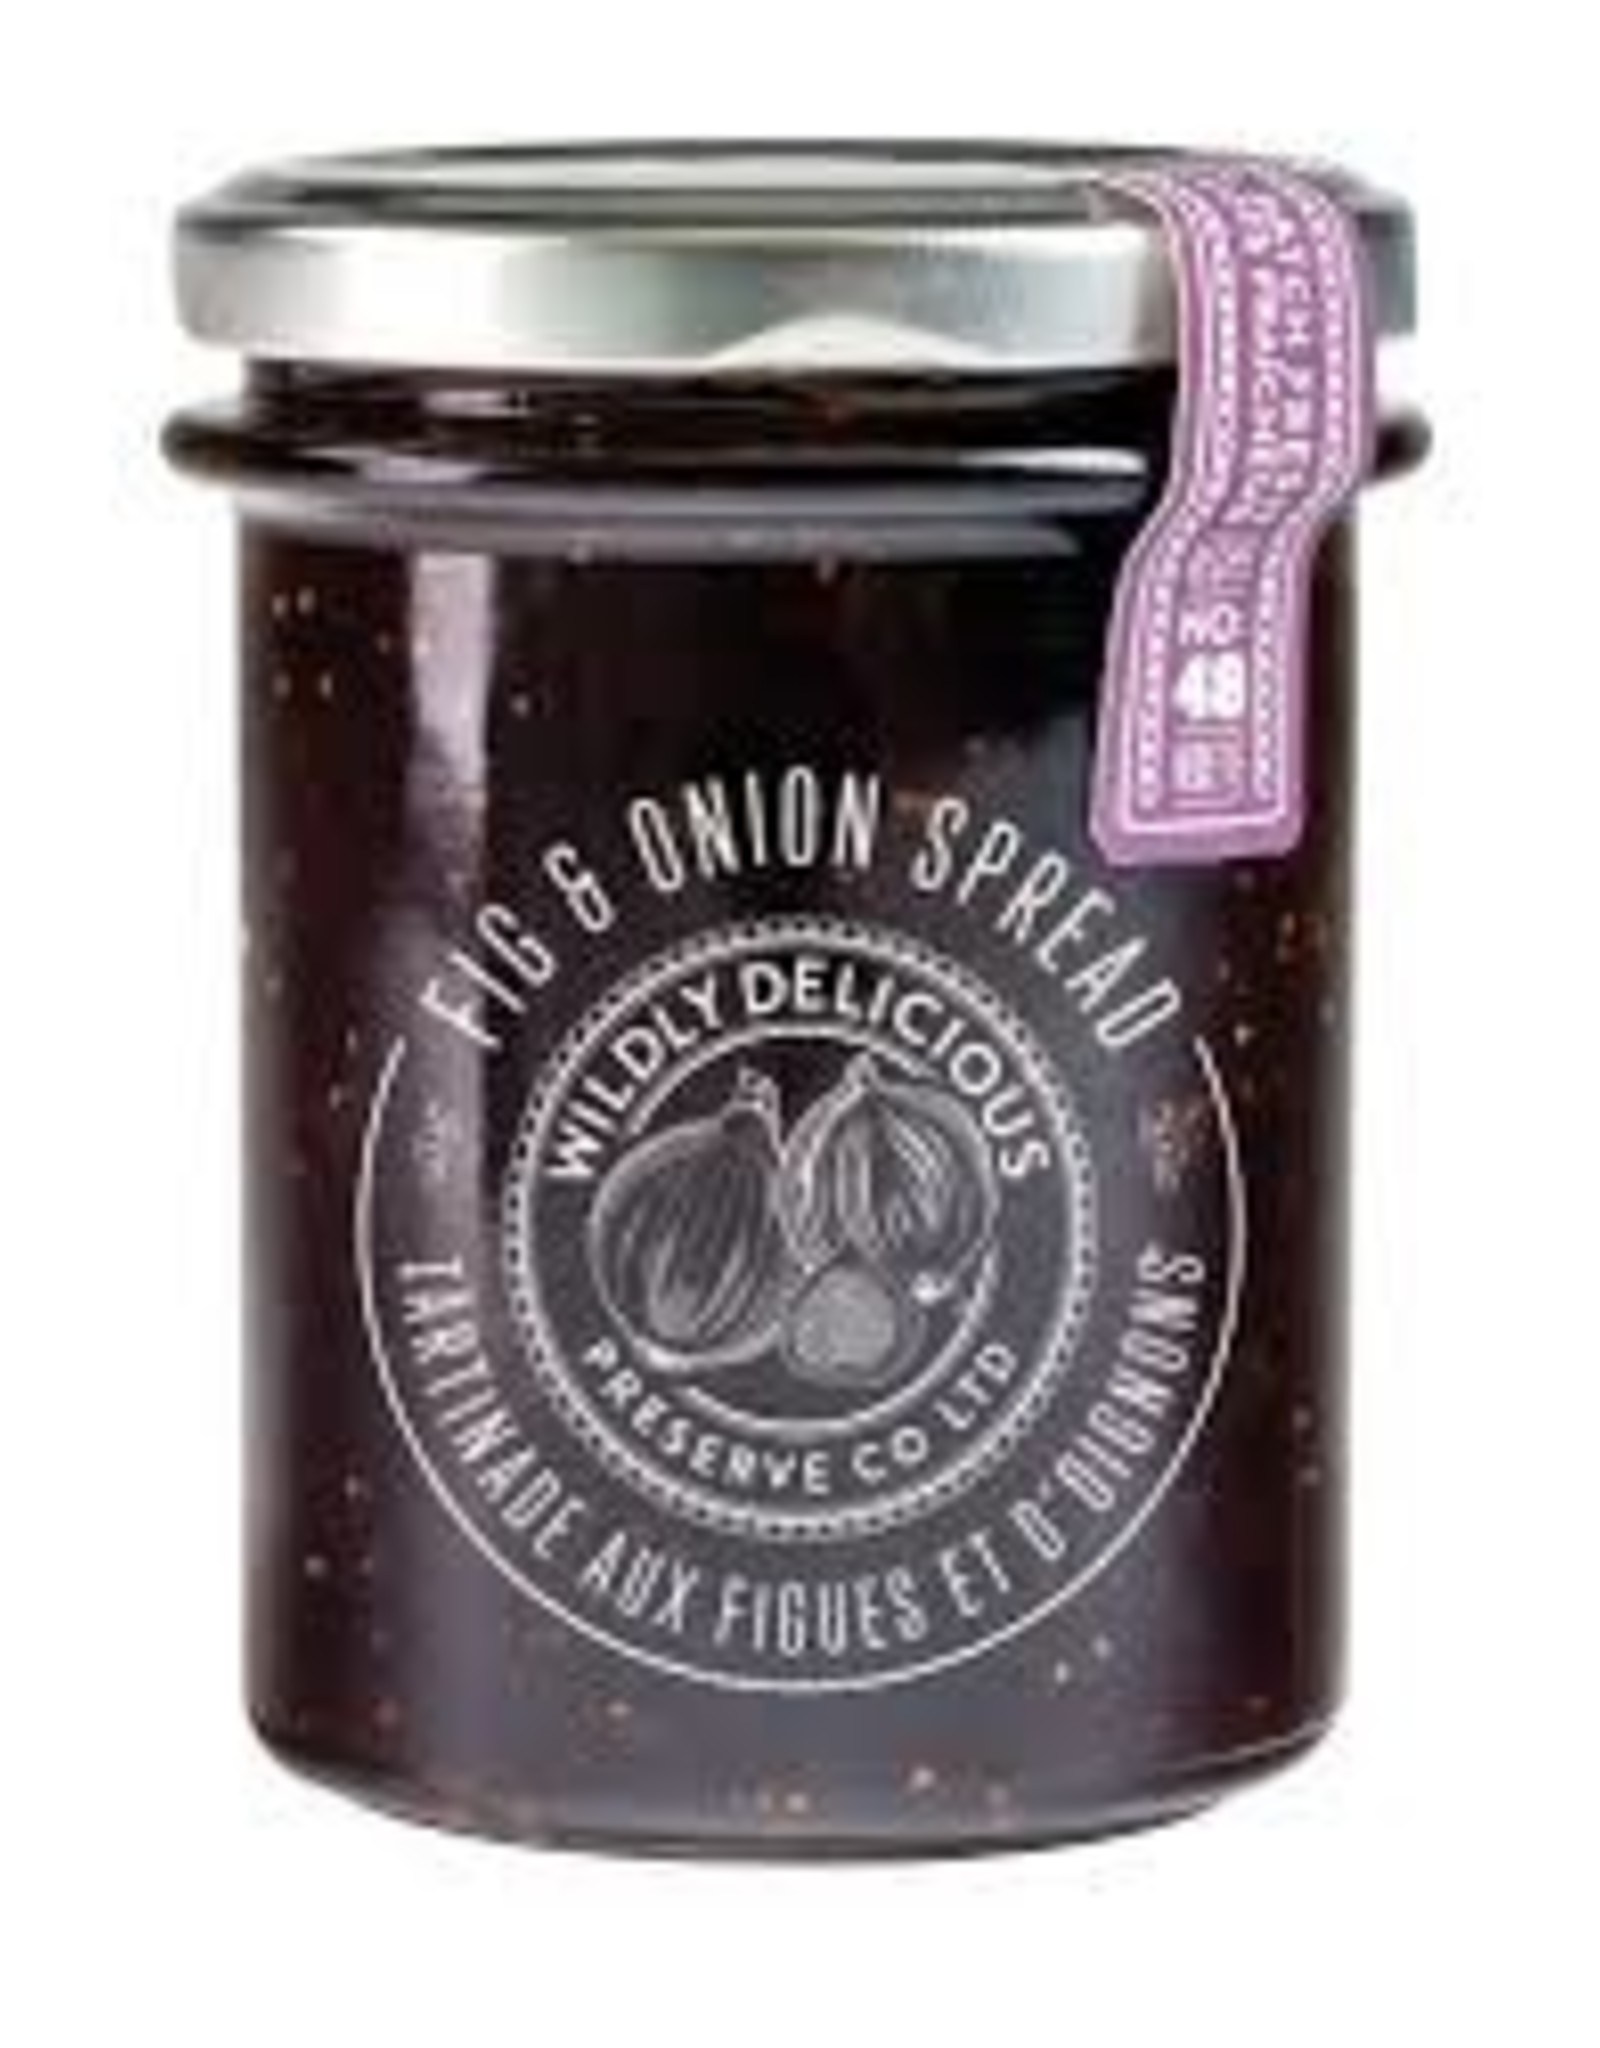 Wildly Delicious Fig and Onion Spread